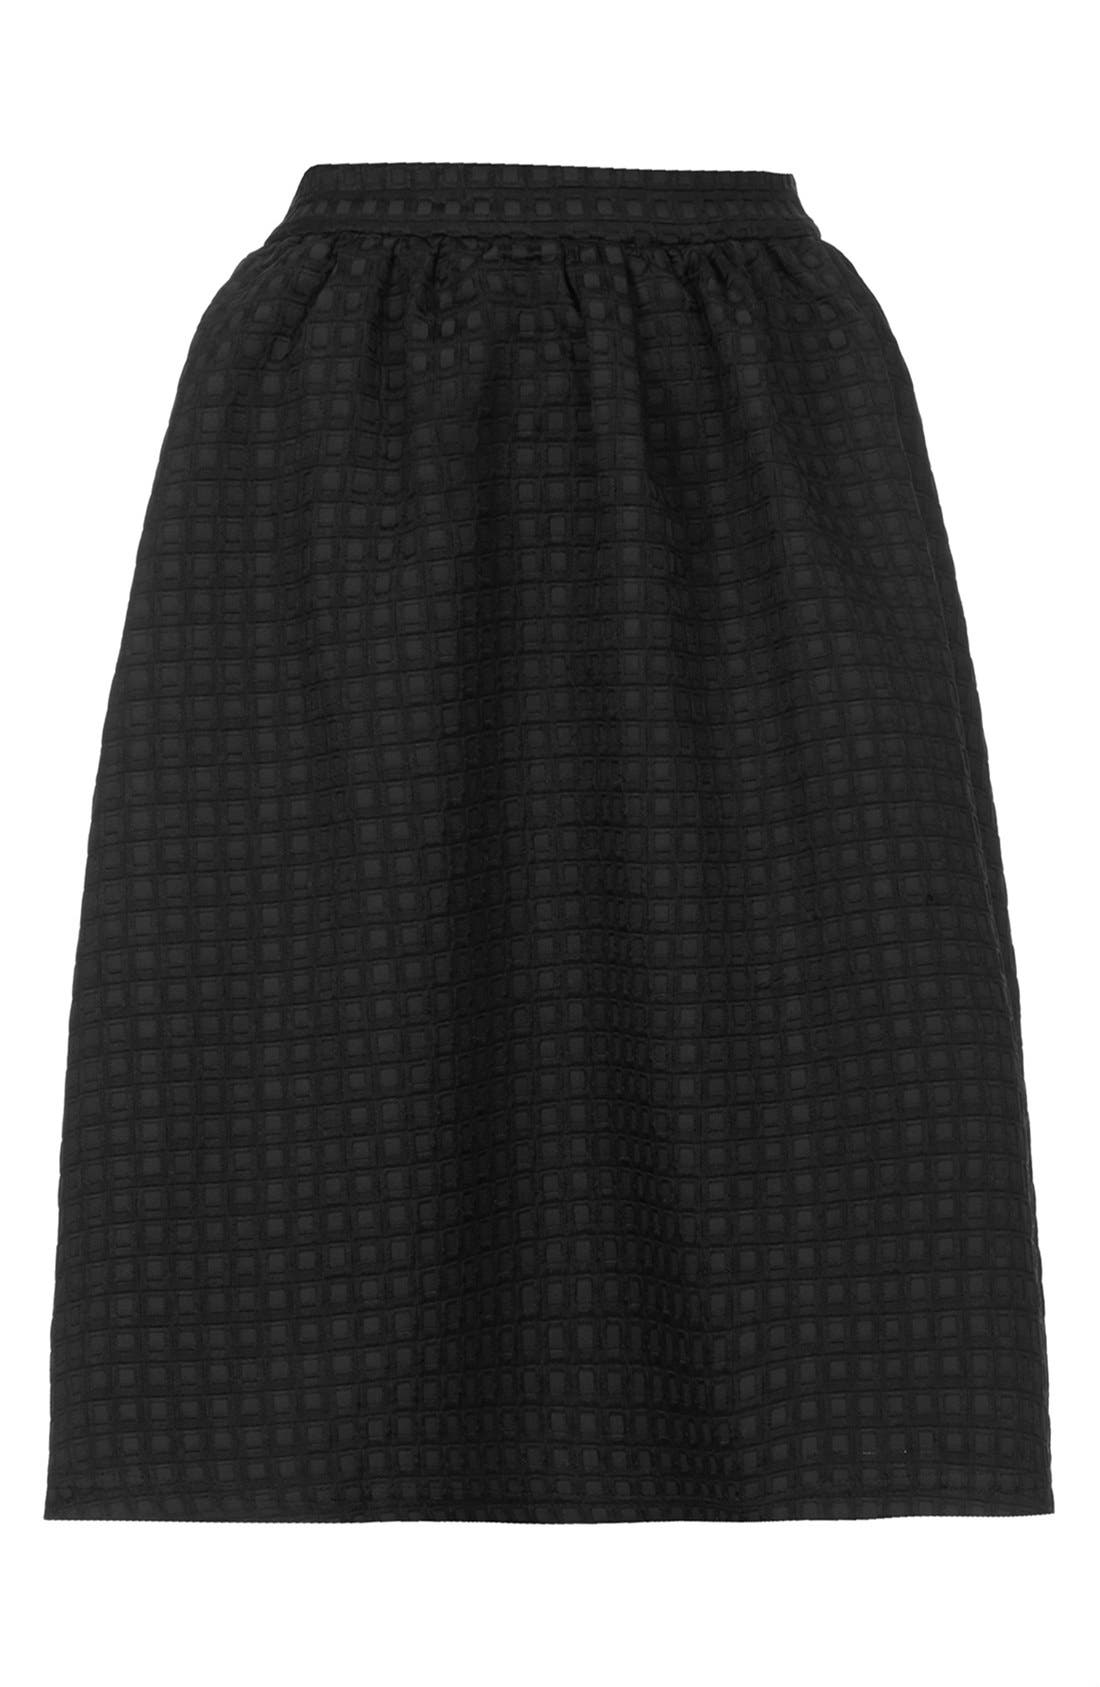 Textured A-Line Skirt,                             Alternate thumbnail 2, color,                             001